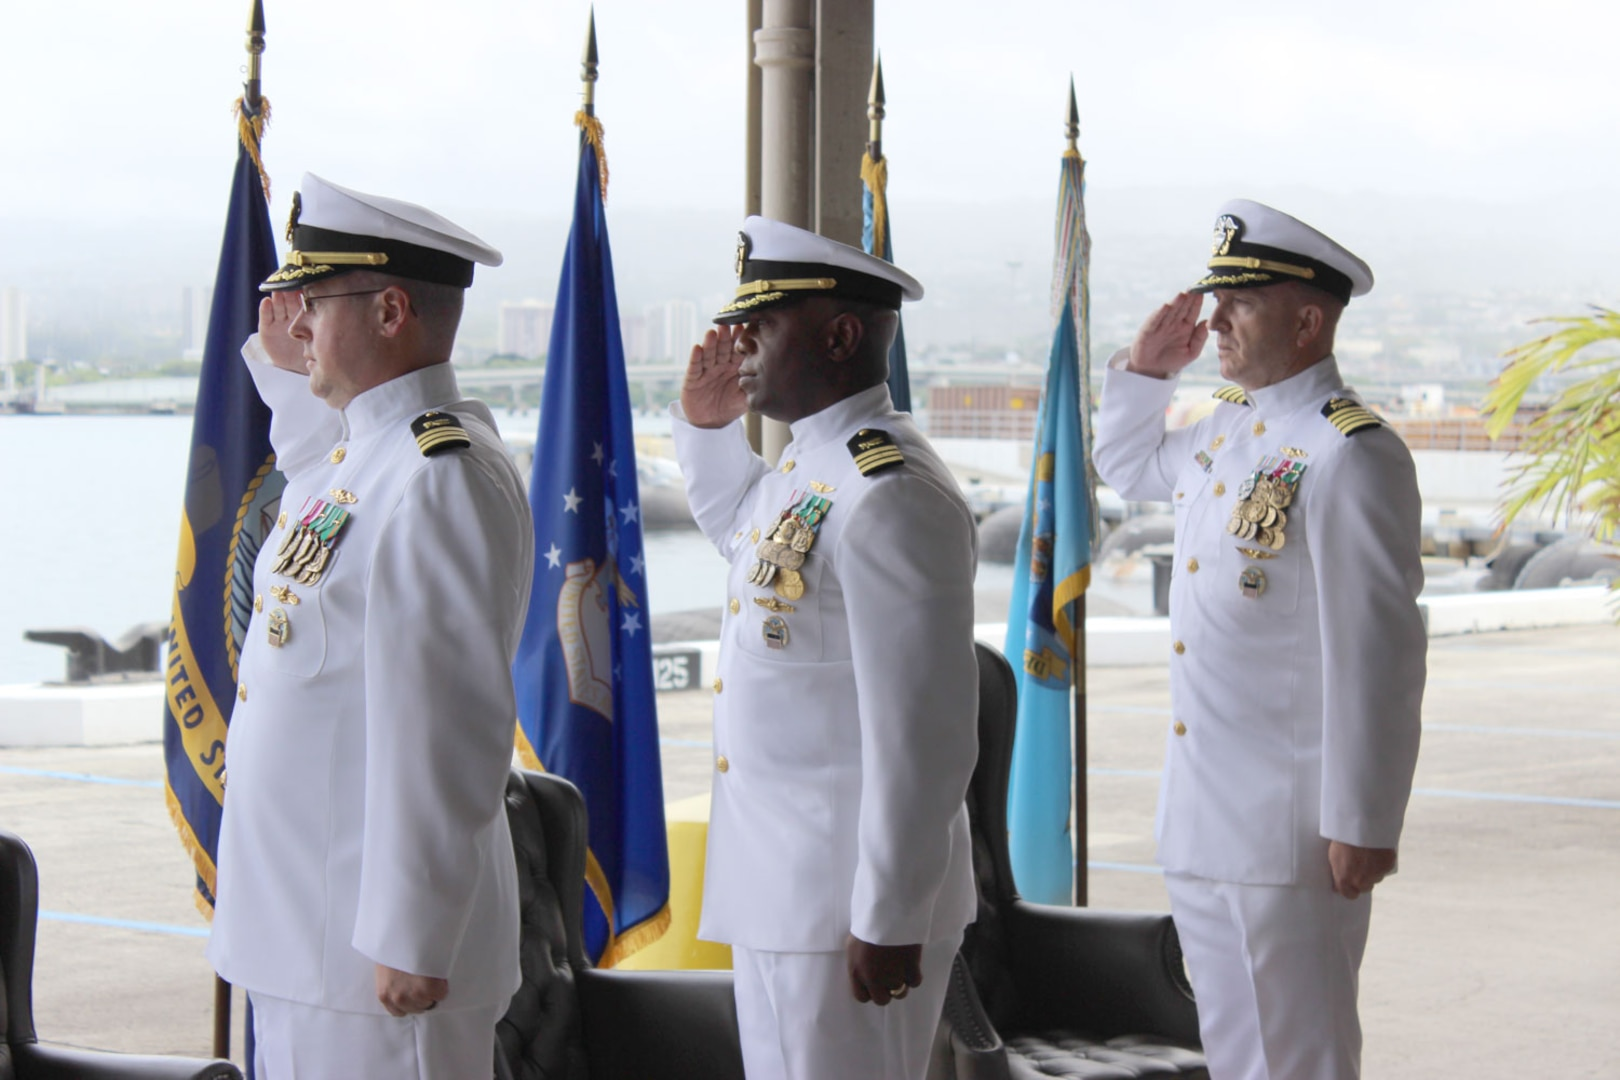 Three Navy officers salute